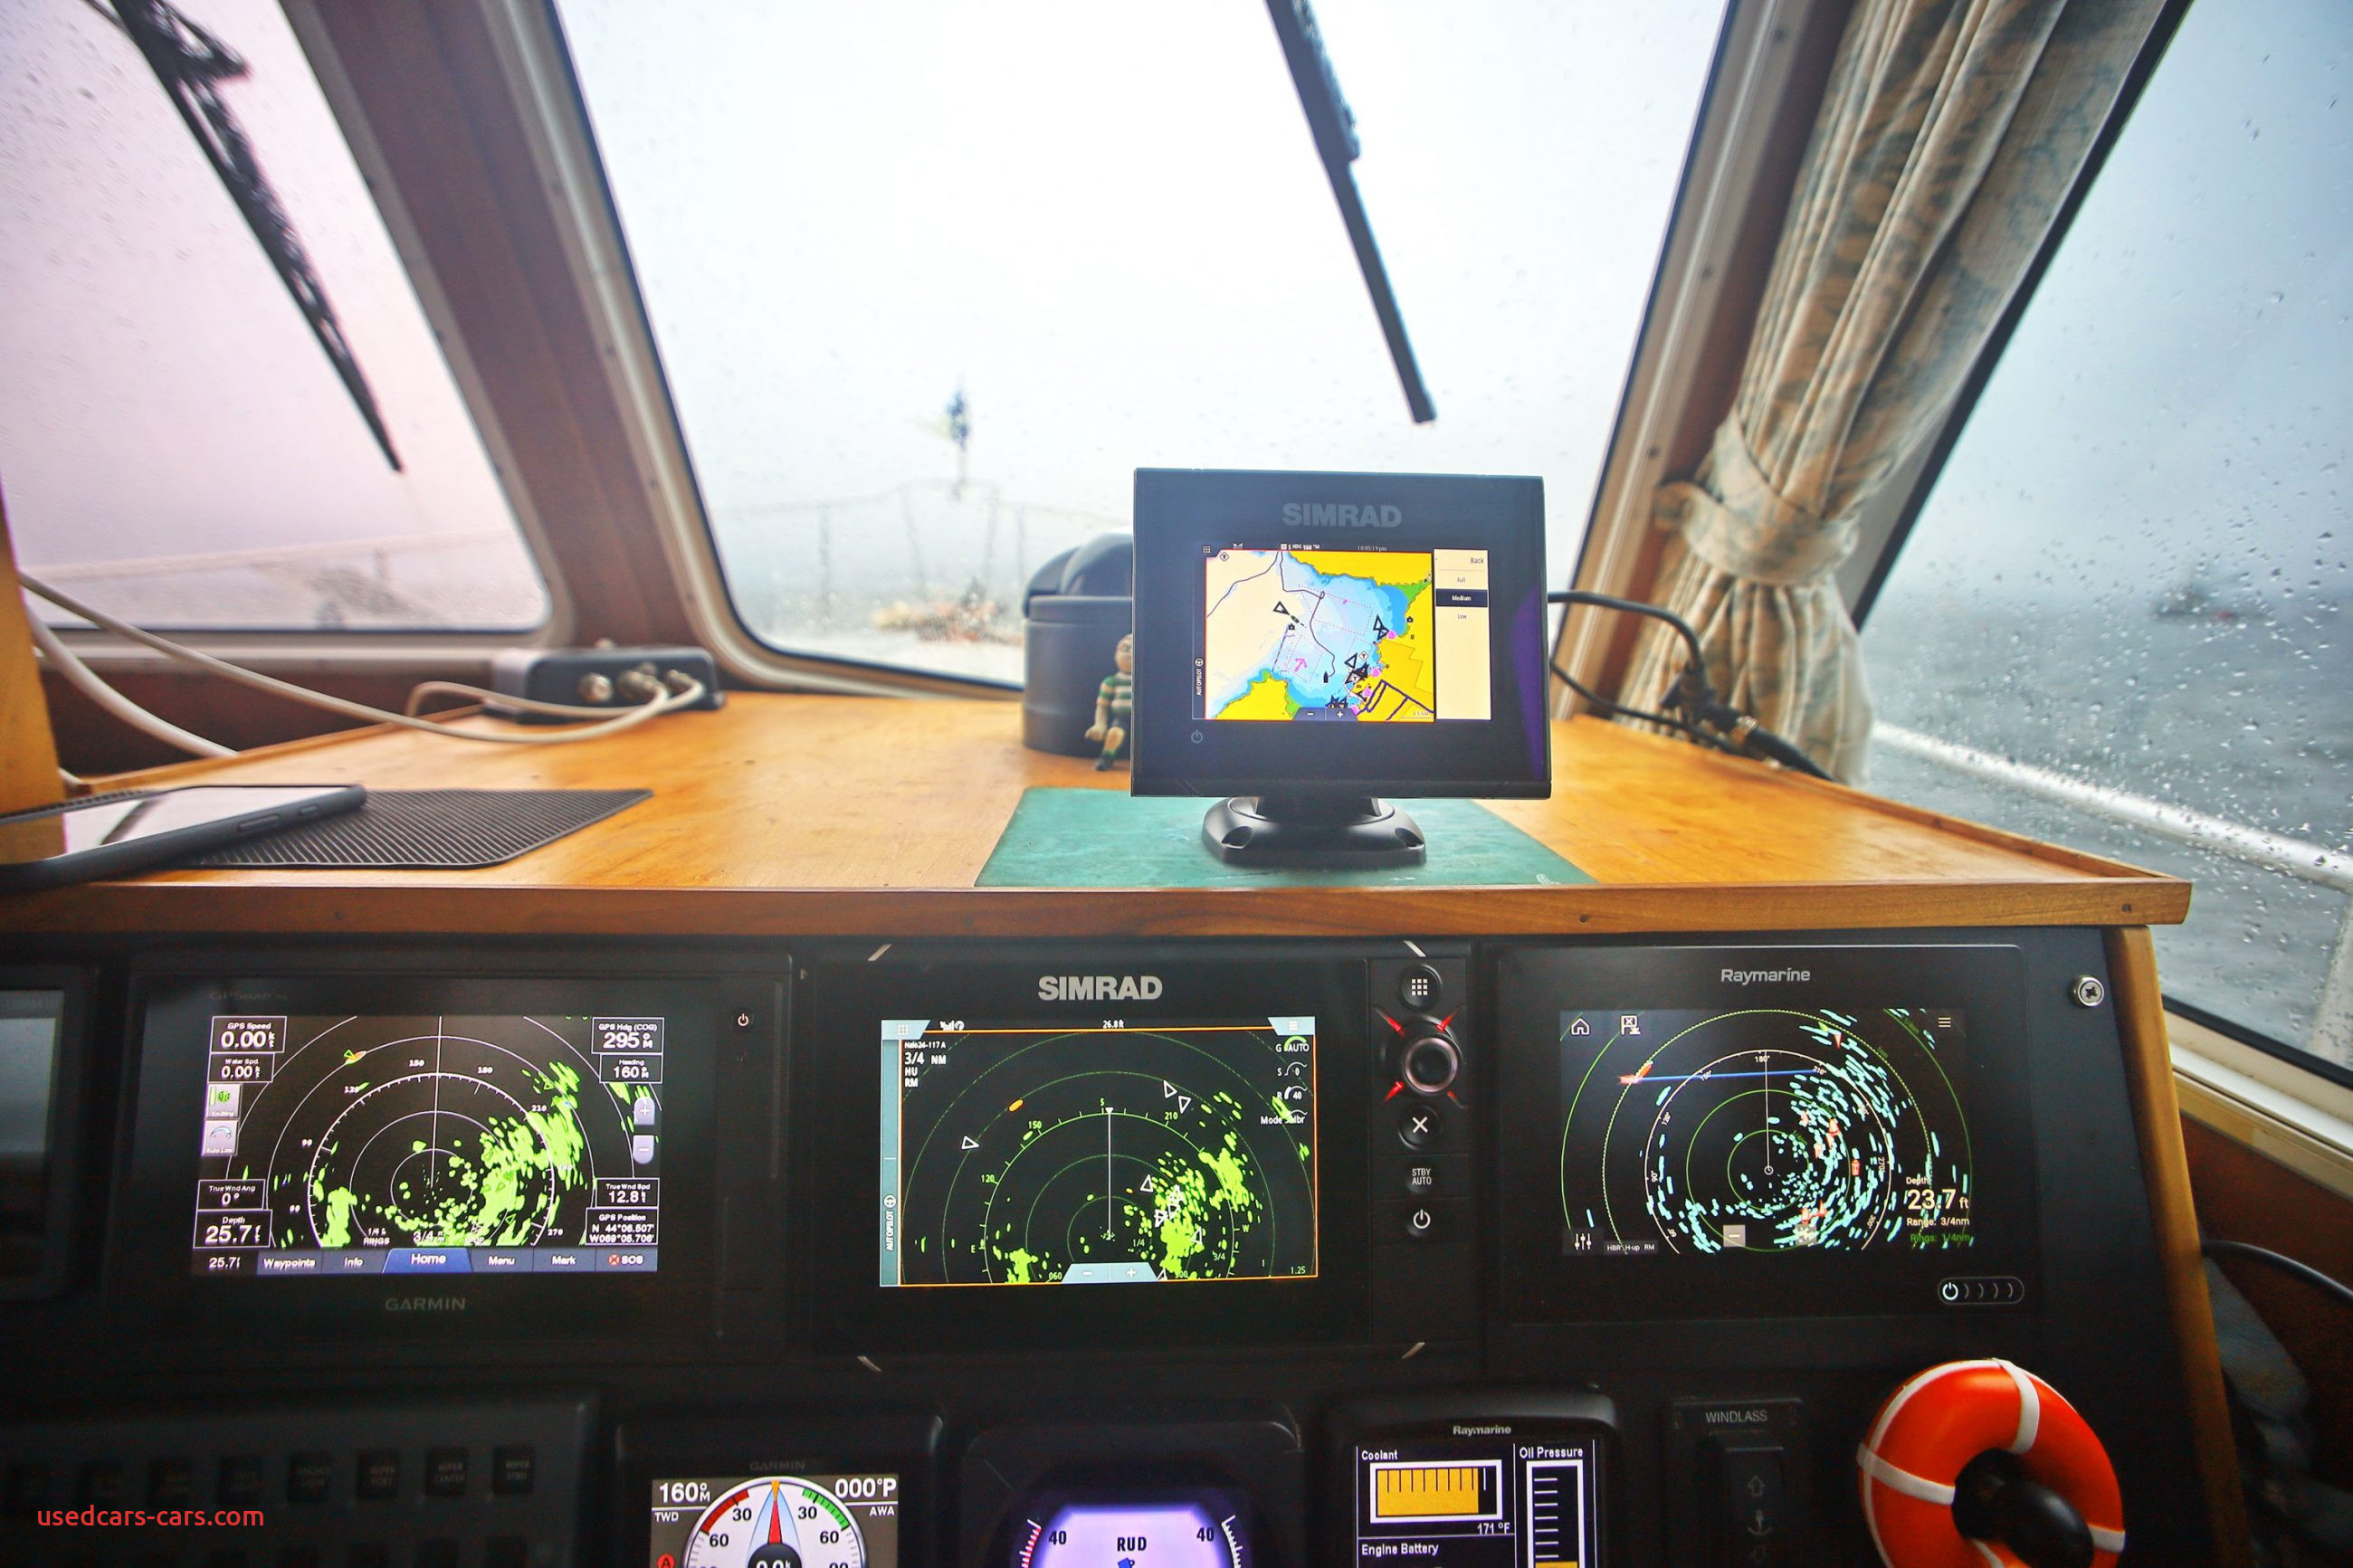 Fantom Works Inspirational Furuno Nxt & Garmin Fantom Doppler Marine Radar is Here